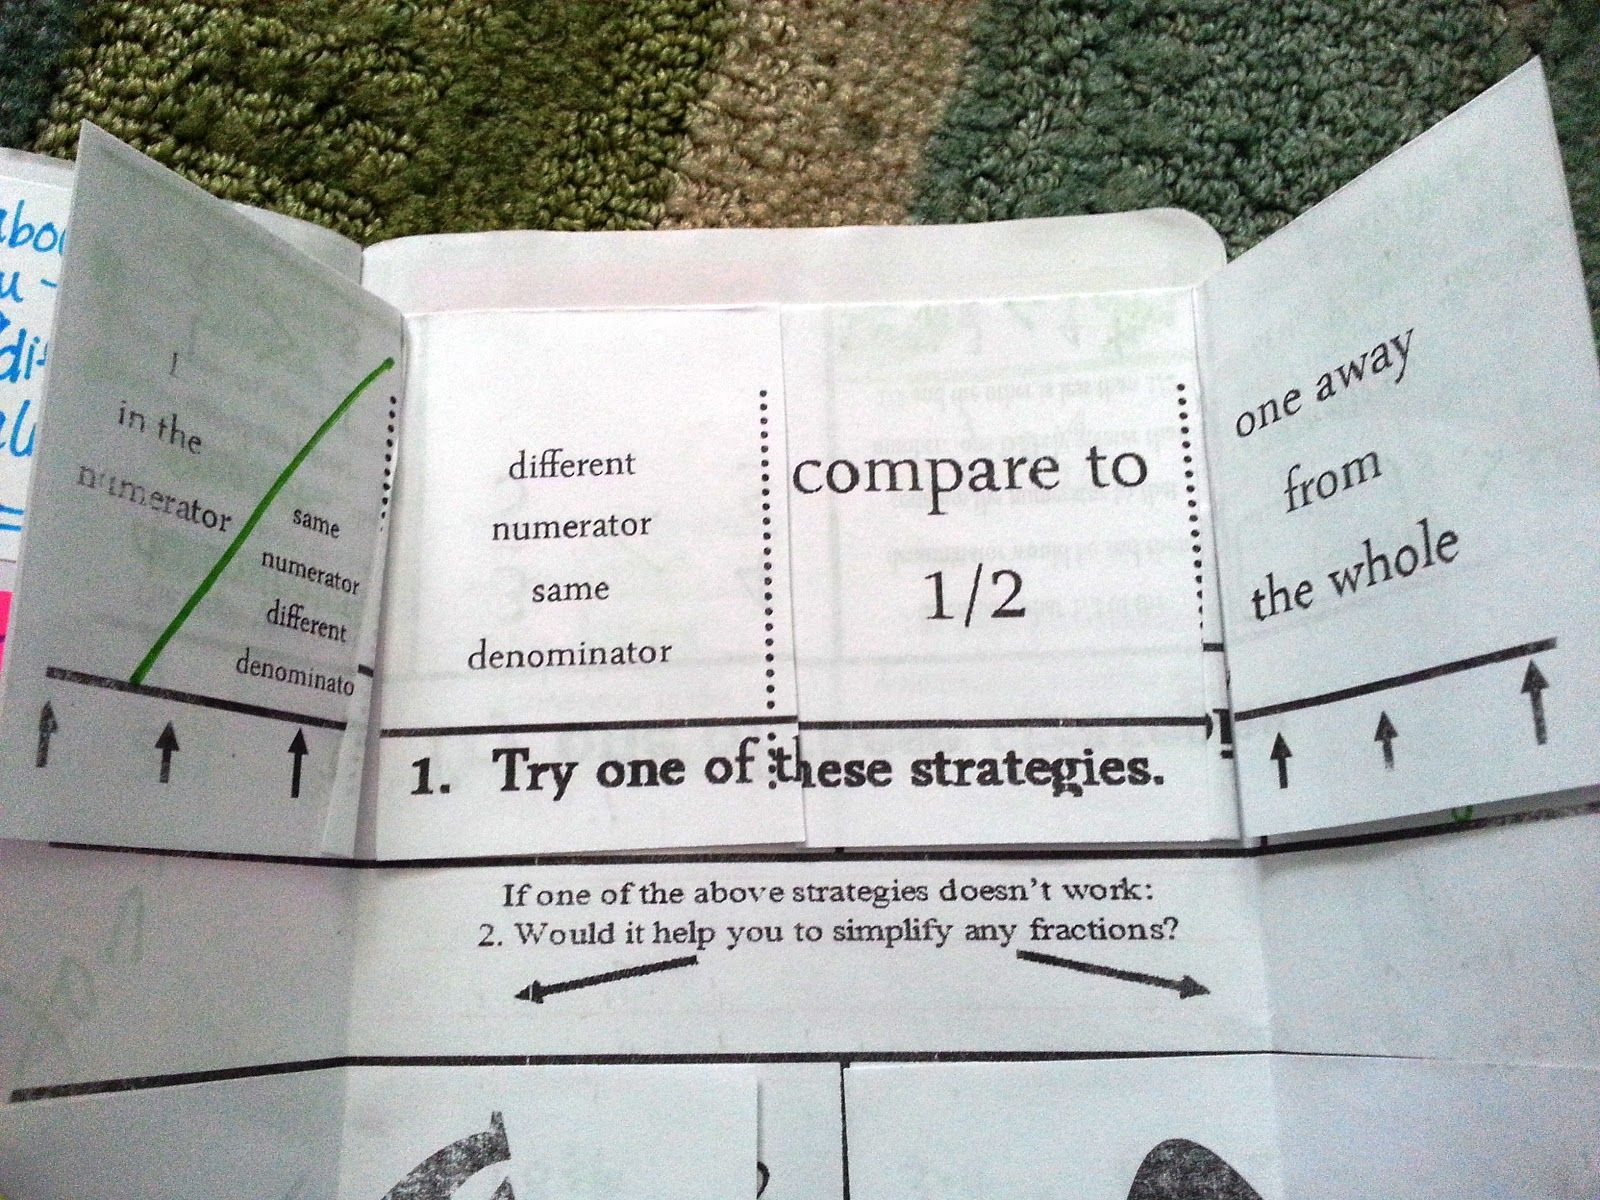 I've got a foldable for that!: comparing fractions